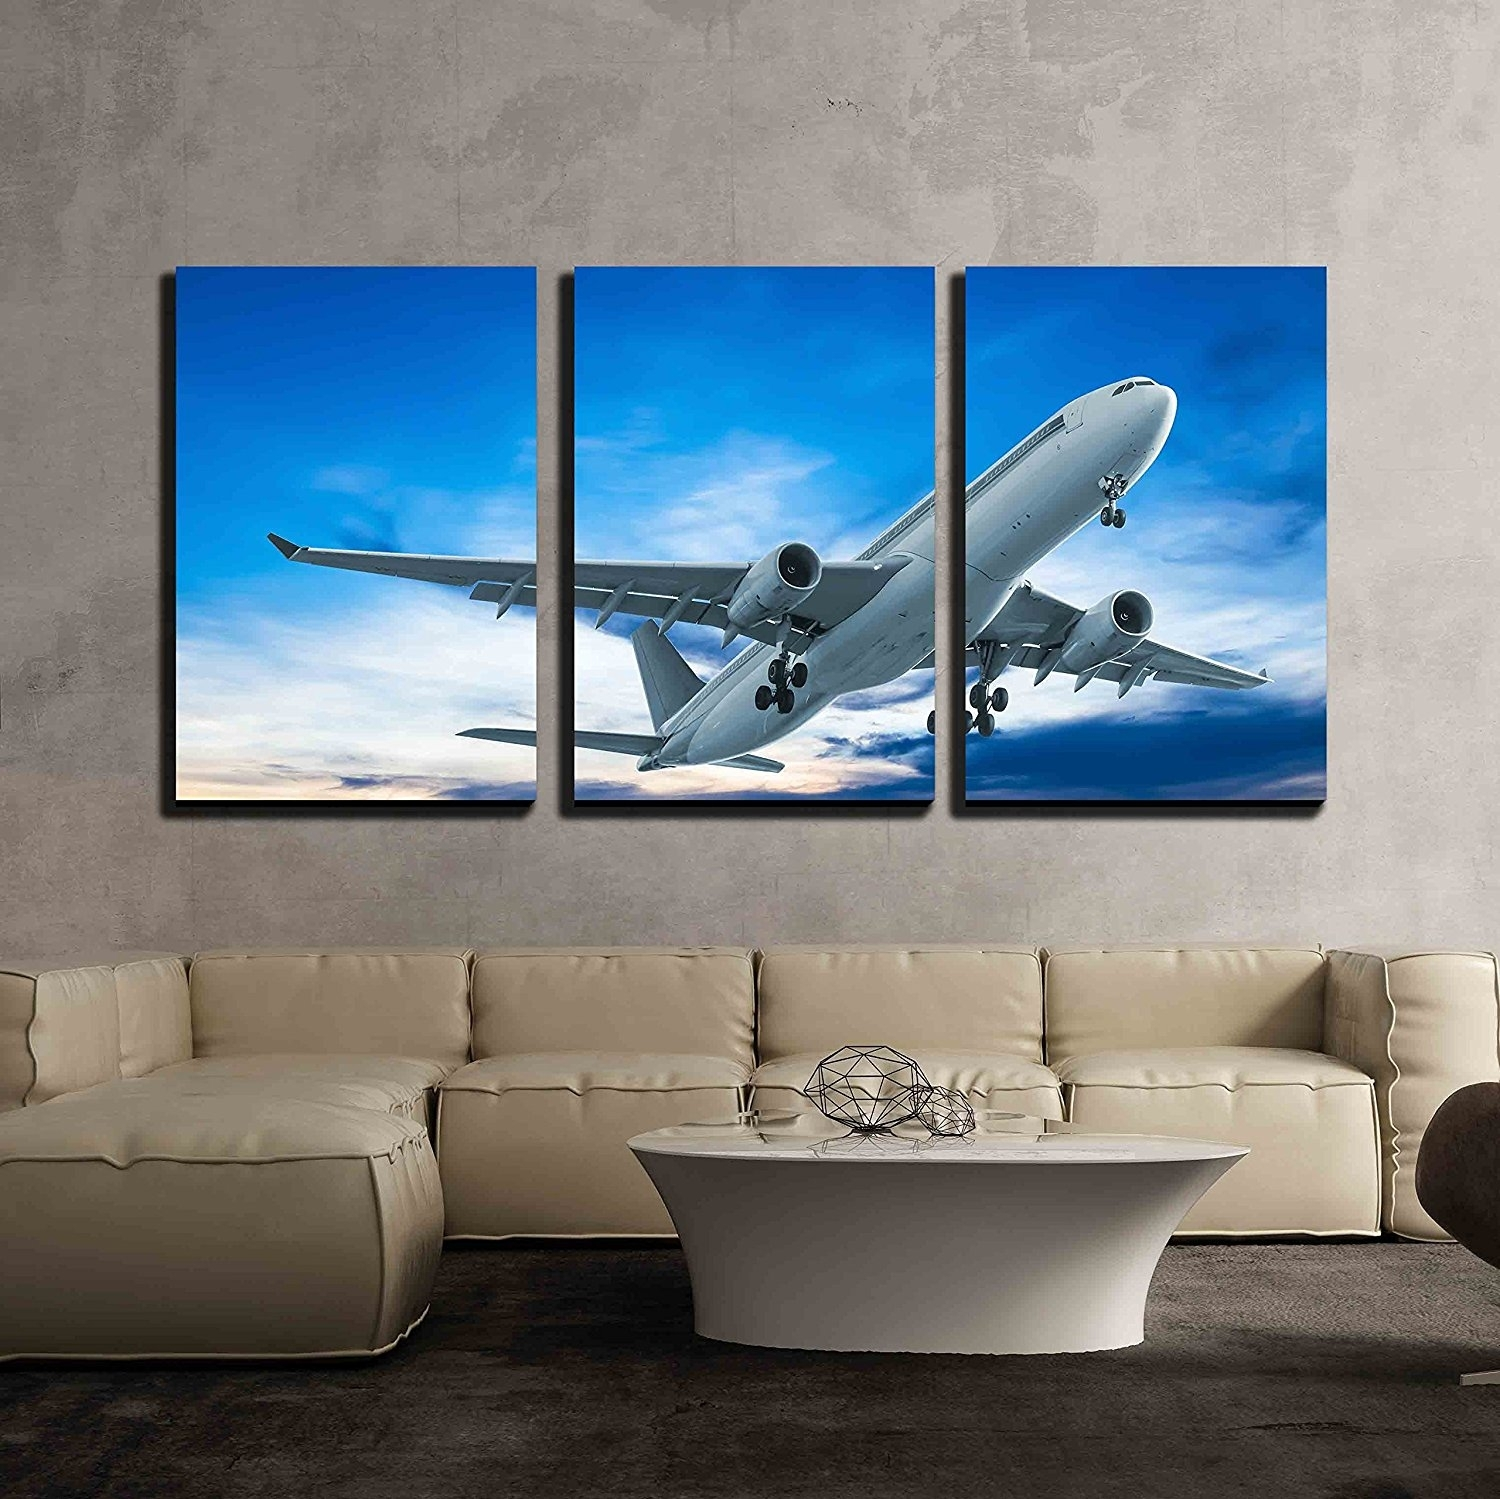 Blue Aviation Wall Art : Andrews Living Arts – Cool Themed Aviation Inside Most Recently Released Aviation Wall Art (View 11 of 20)